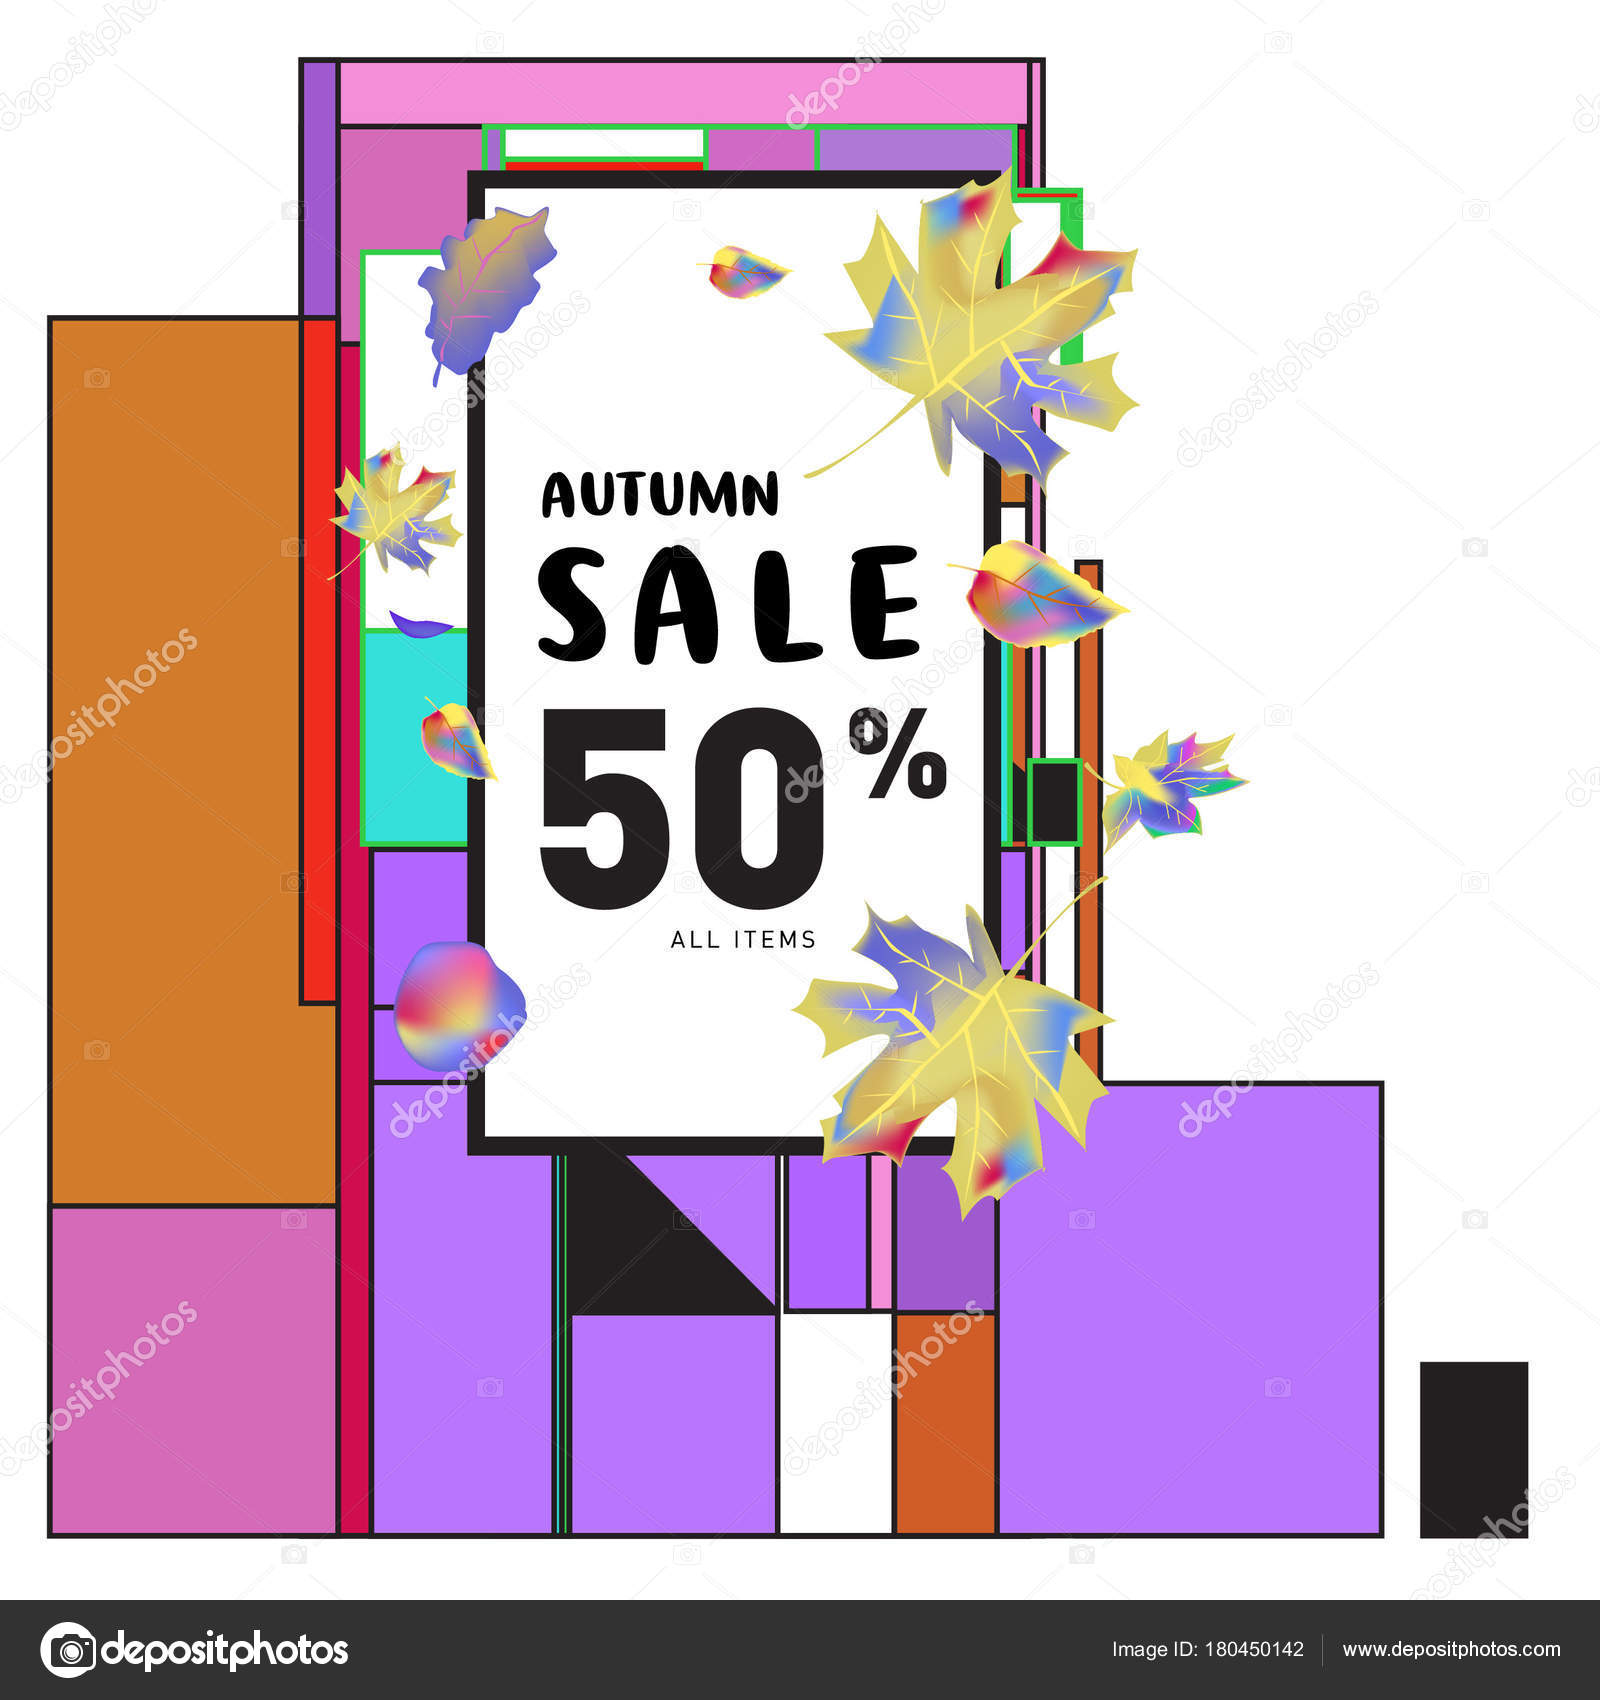 Vector Autumn Sale Poster Template Lettering Bright Fall Leaves  Depositphotos 180450142 Stock Illustration Vector Autumn Sale  For Sale Poster Template